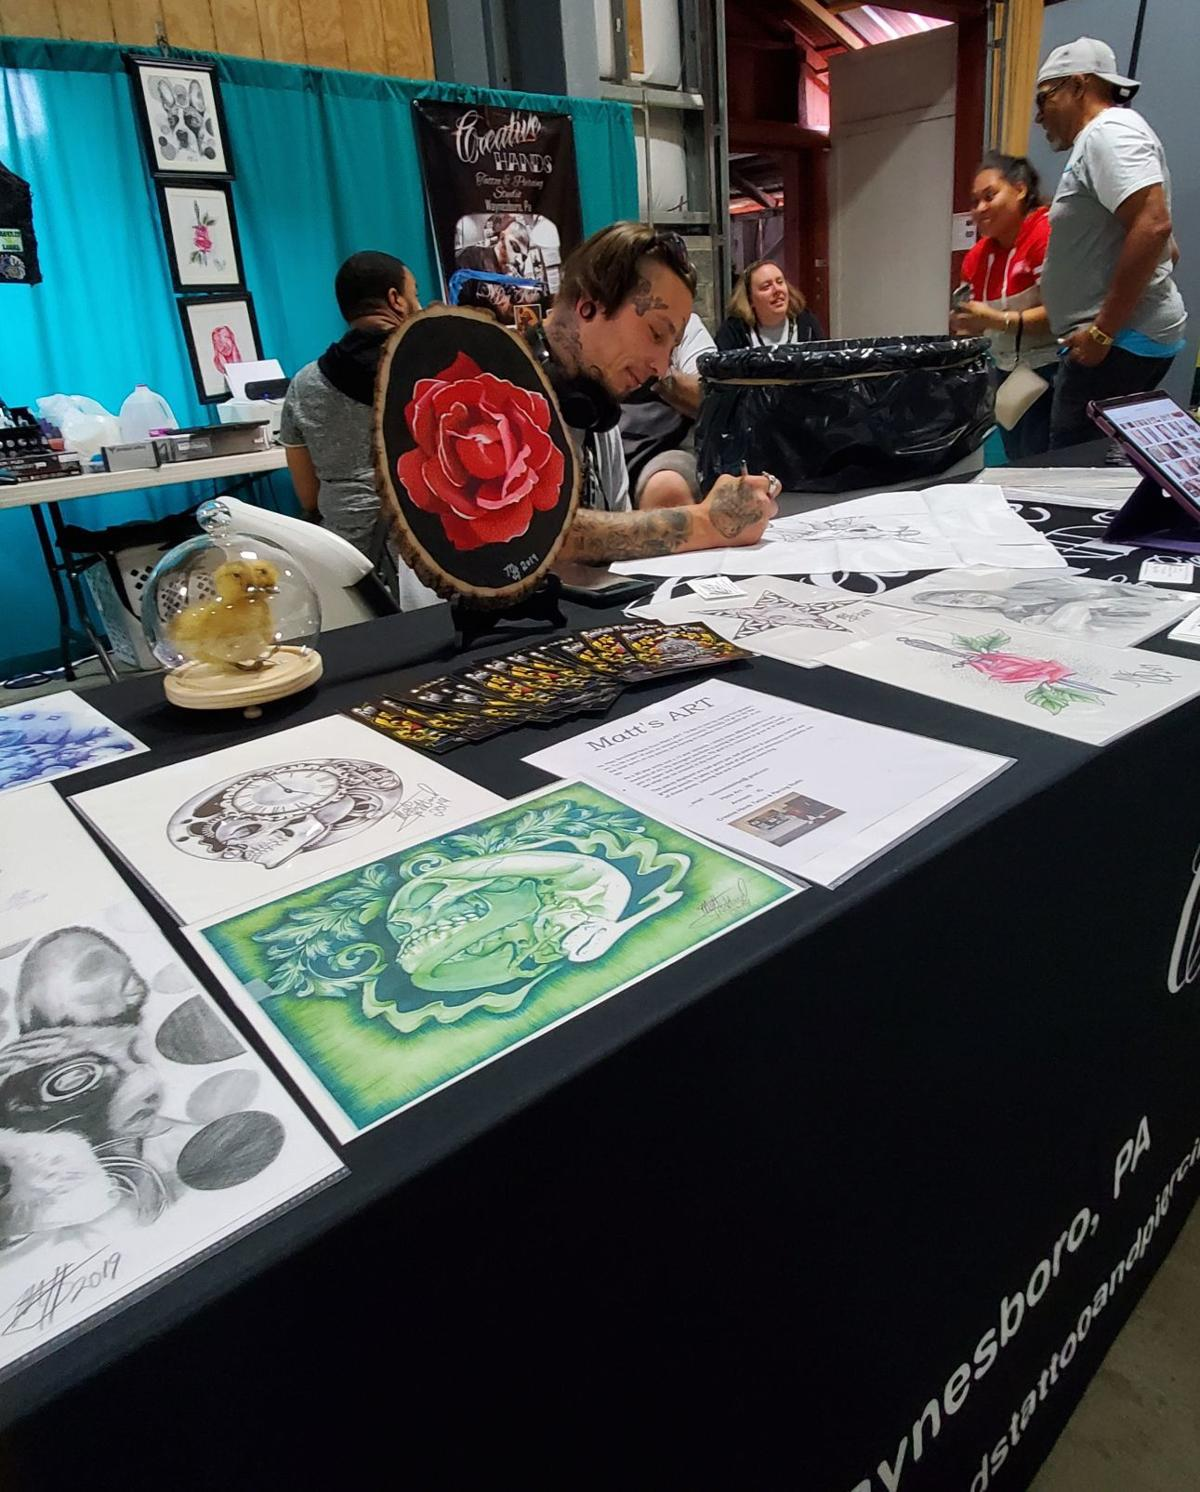 Southern Maryland Tattoo Expo comes to La Plata